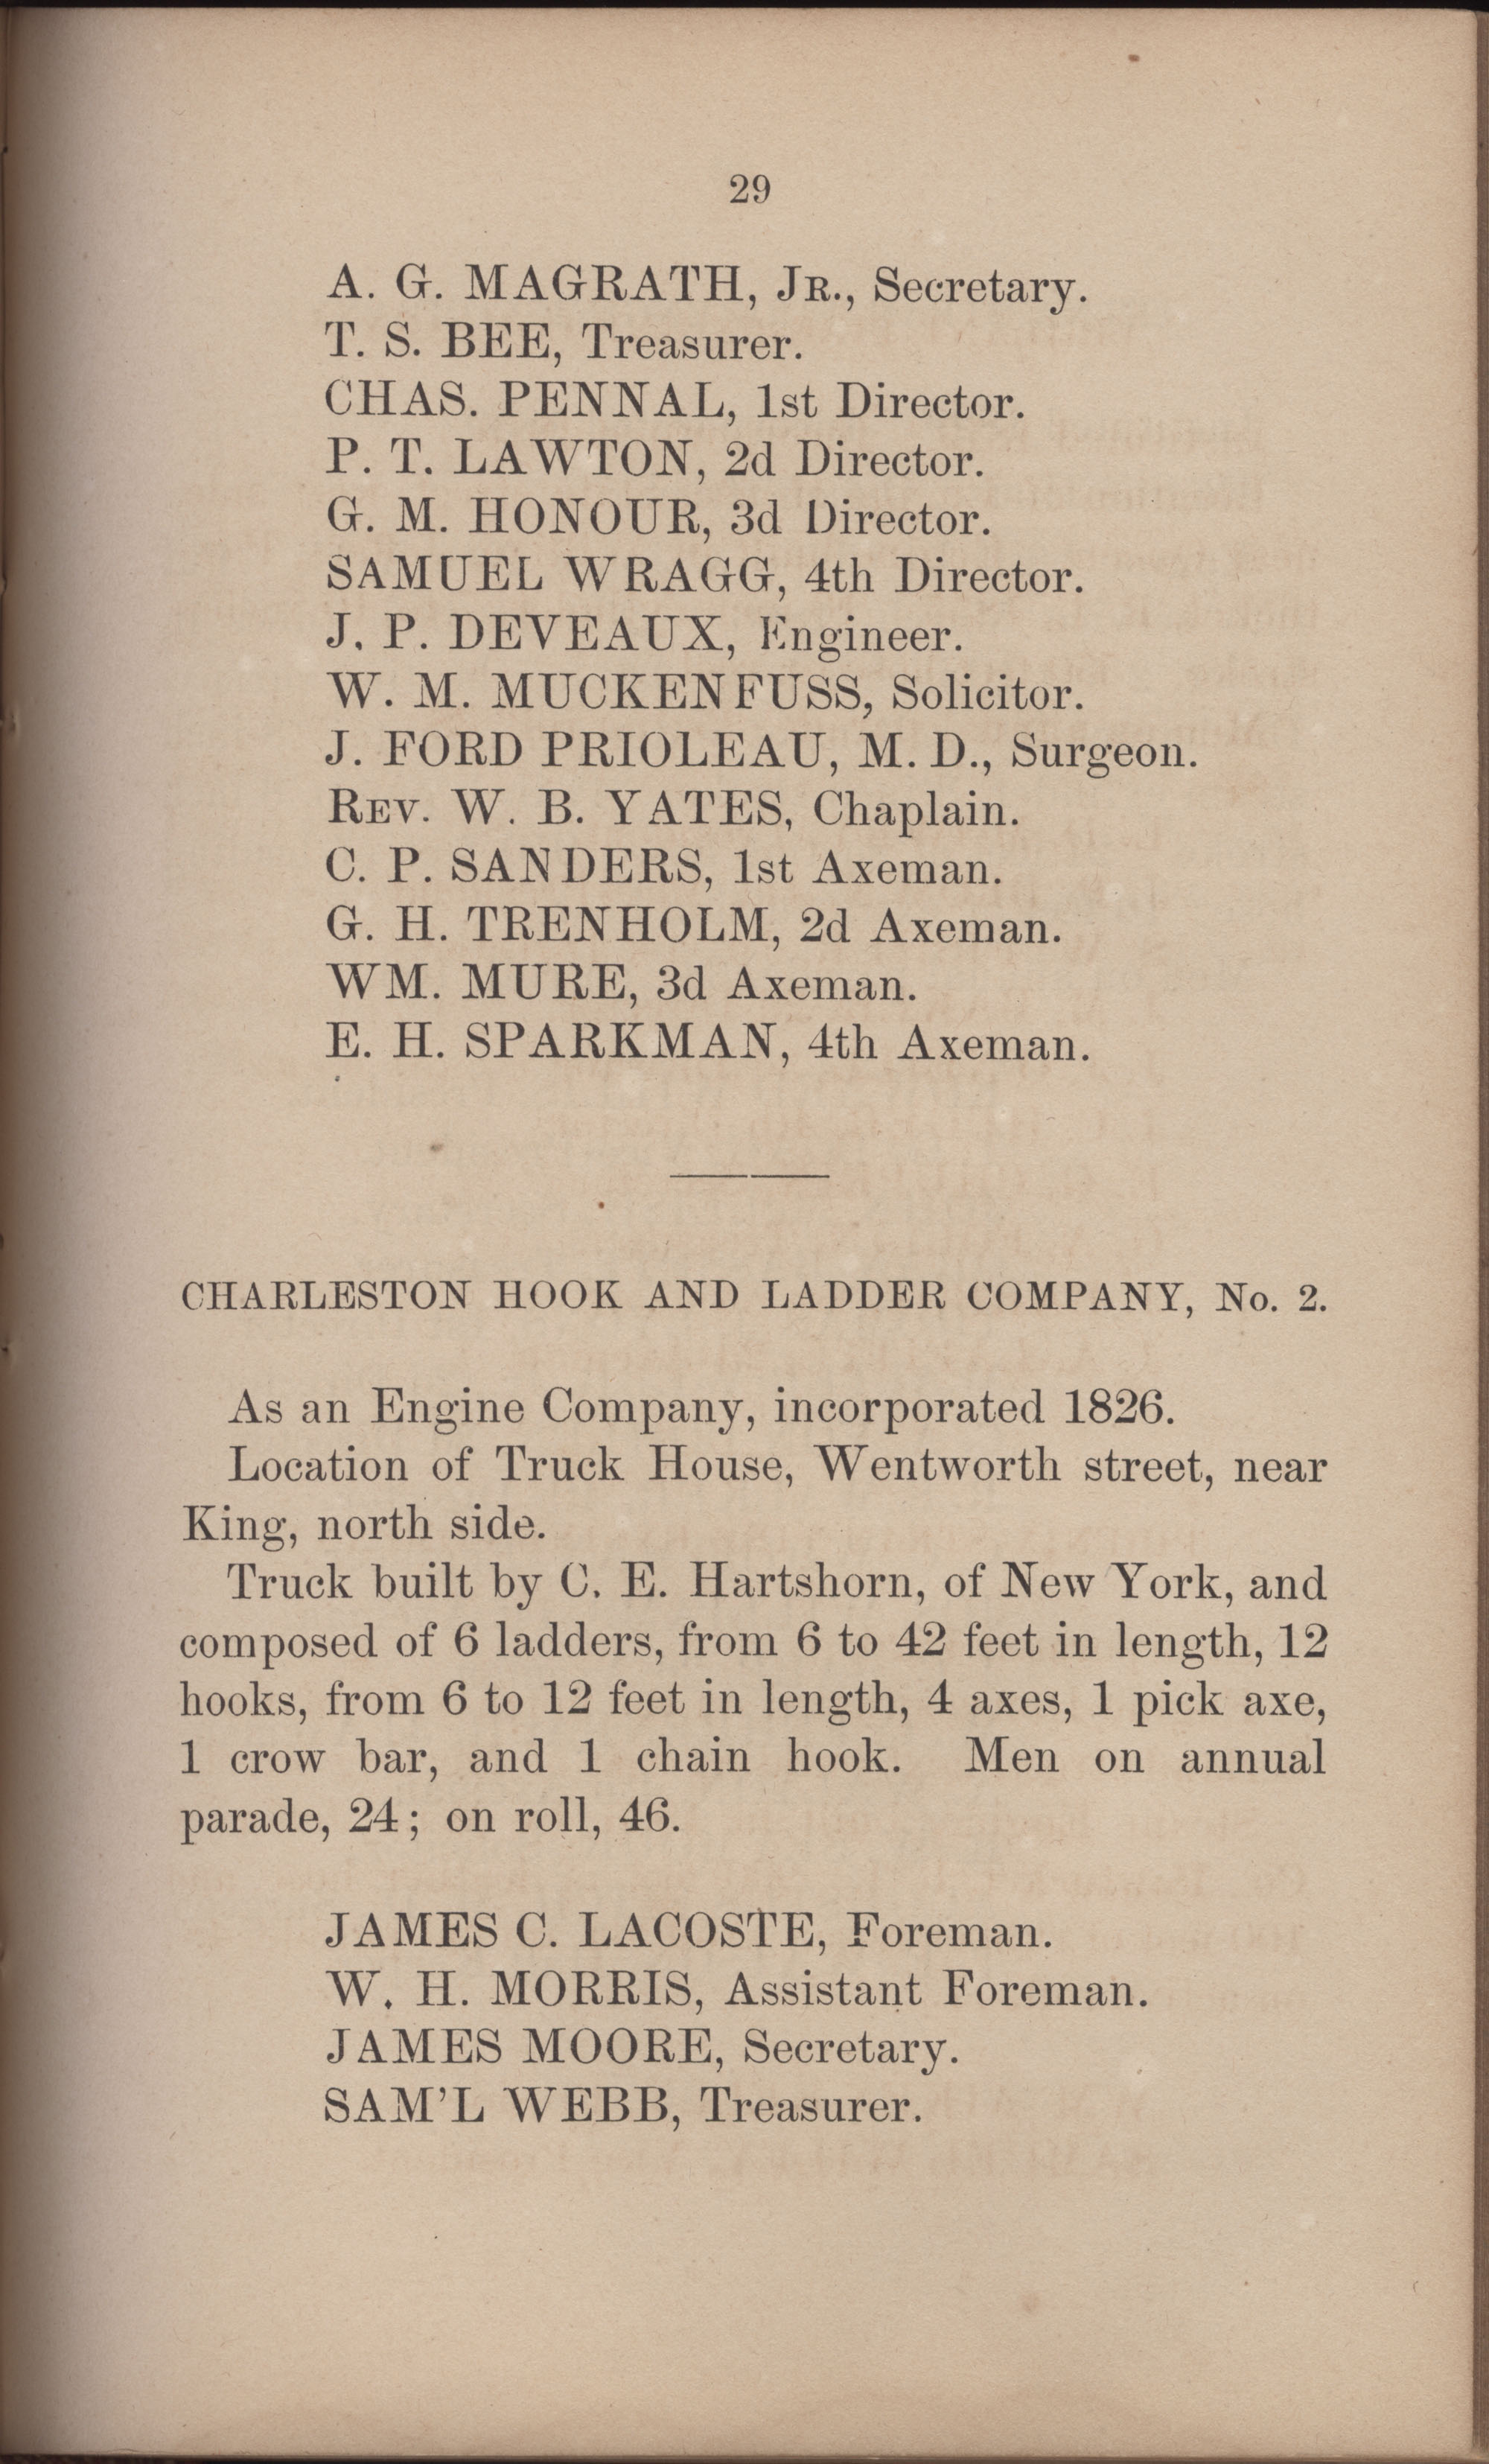 Annual Report of the Chief of the Fire Department of the City of Charleston, page 320